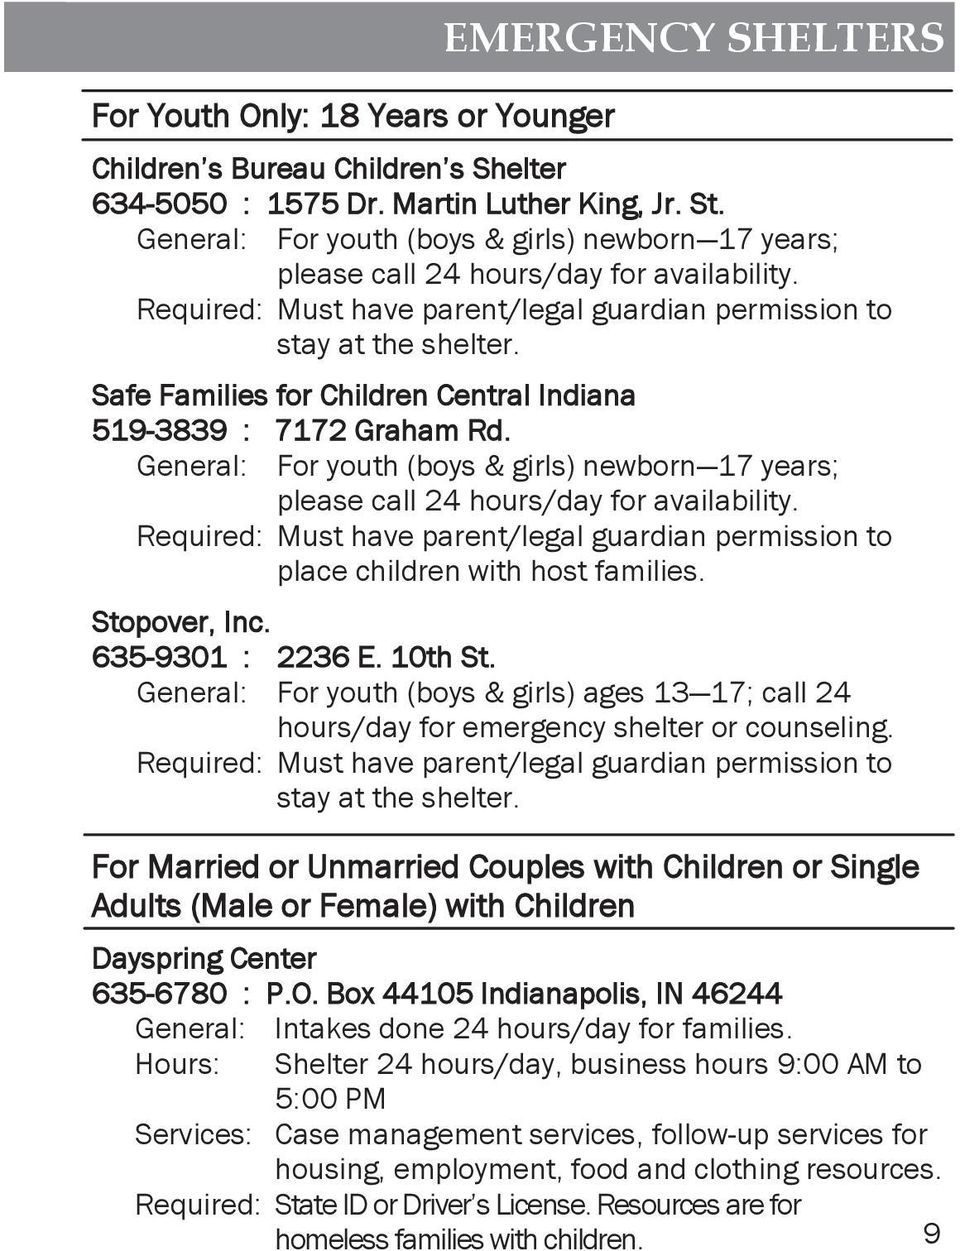 Safe Families for Children Central Indiana 519-3839 : 7172 Graham Rd. General: For youth (boys & girls) newborn 17 years; please call 24 hours/day for availability.